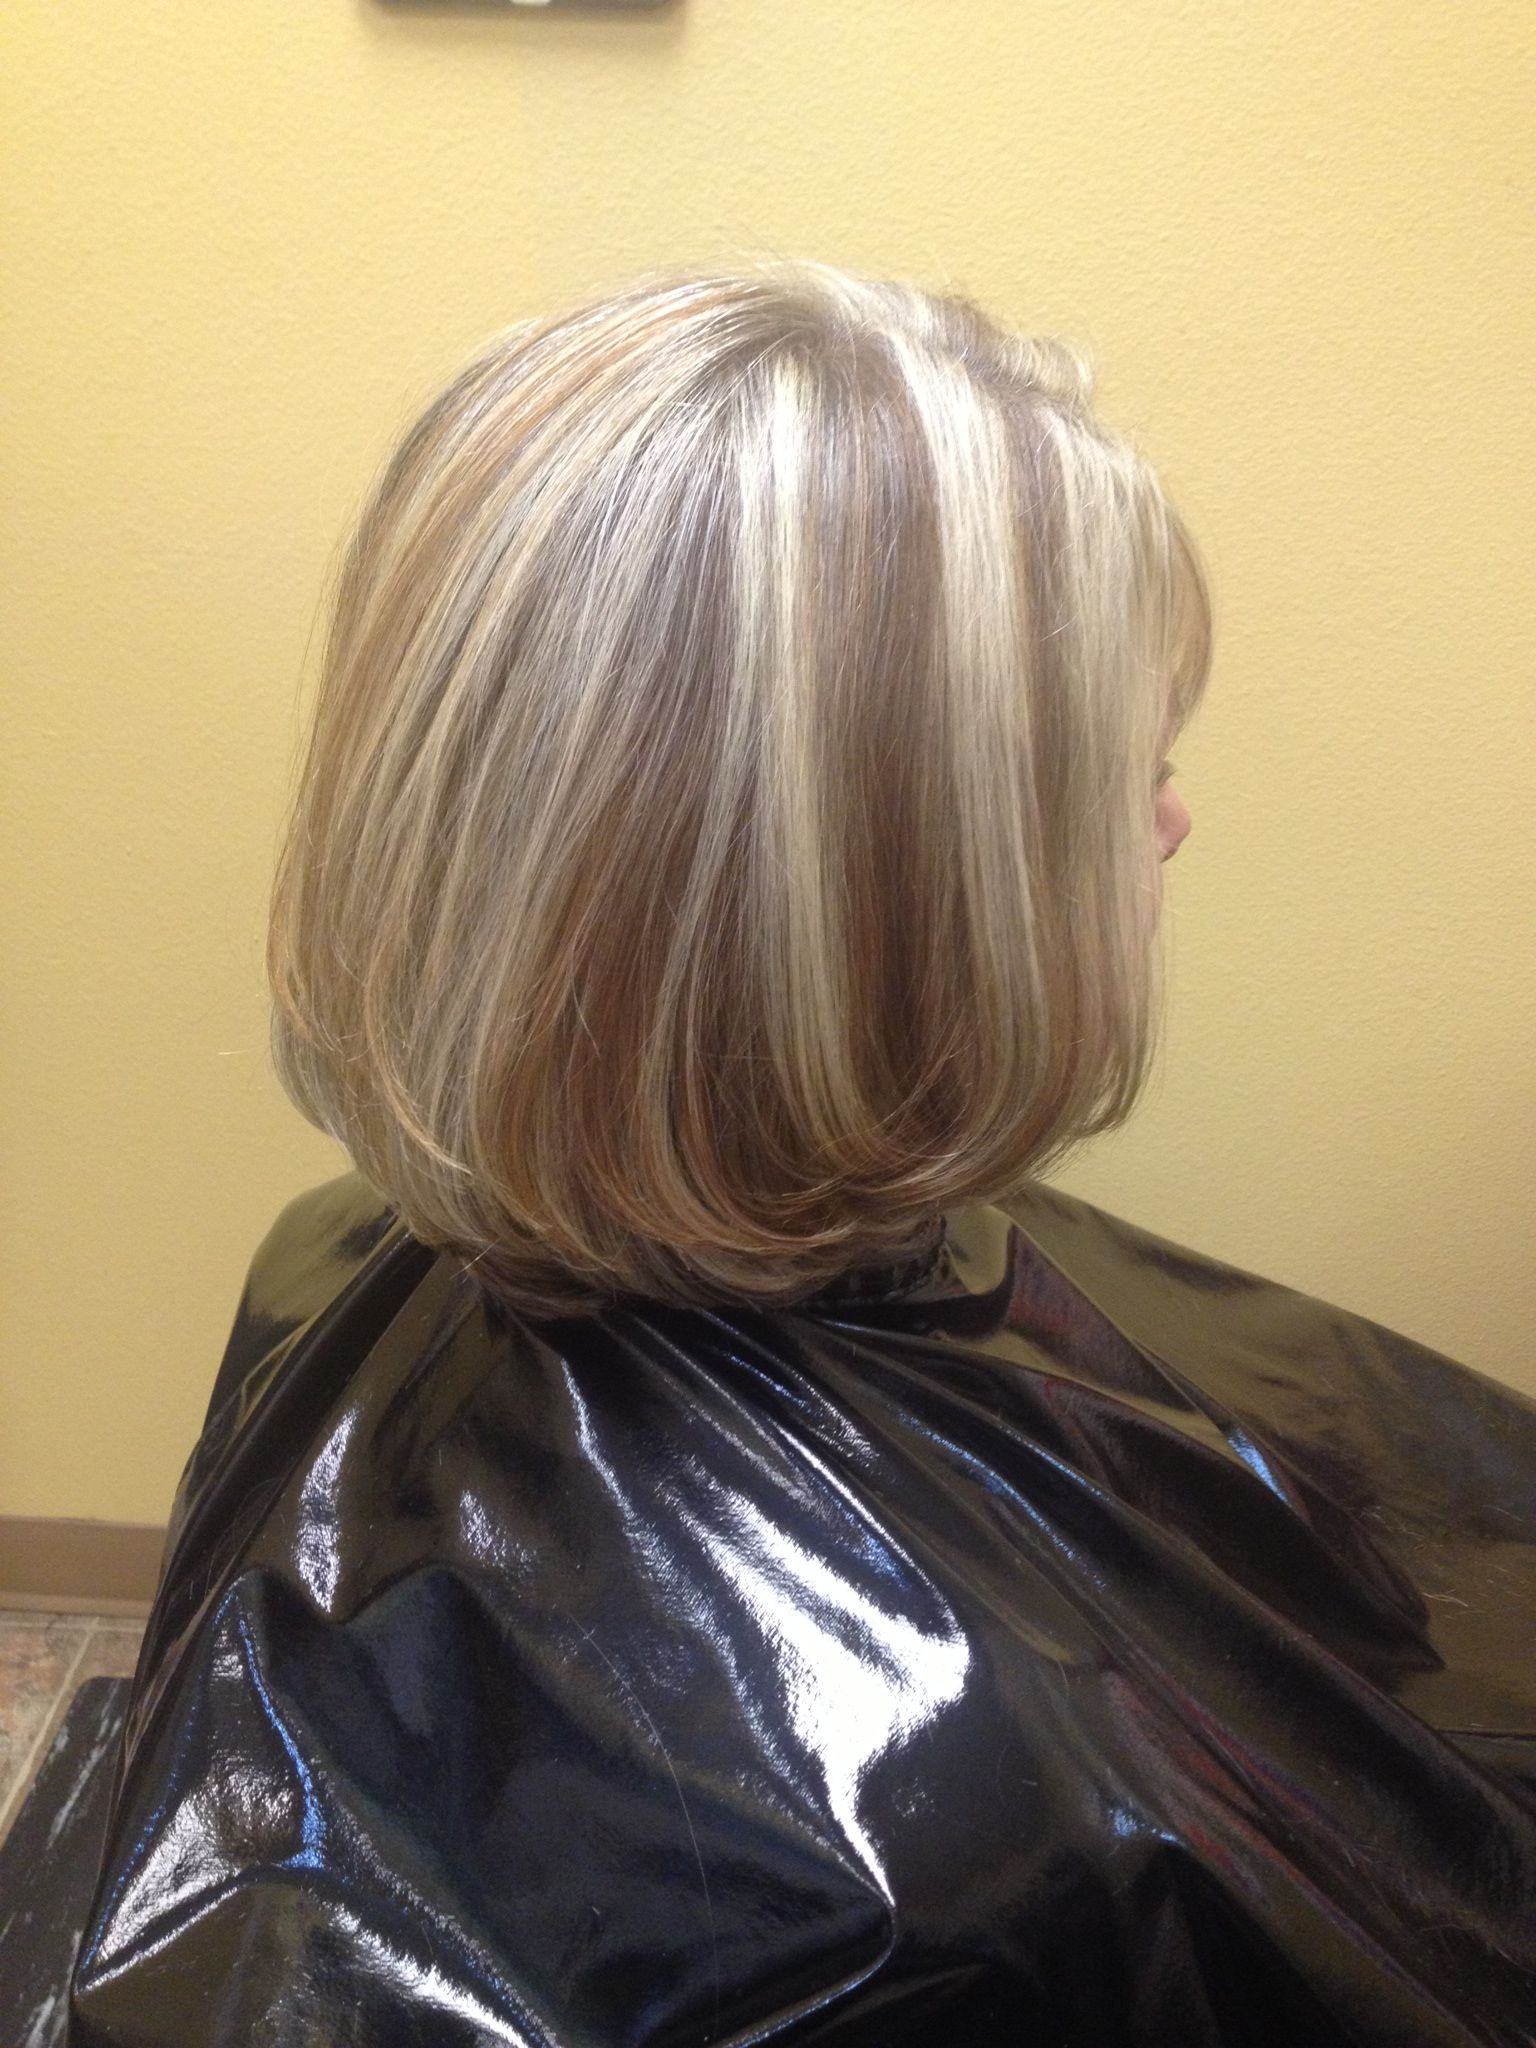 Beautiful Blonde And Honey Brown Highlights Medium Layered Haircut Created By Jessica In Sal Medium Layered Haircuts Professional Hairstyles Long Hair Styles